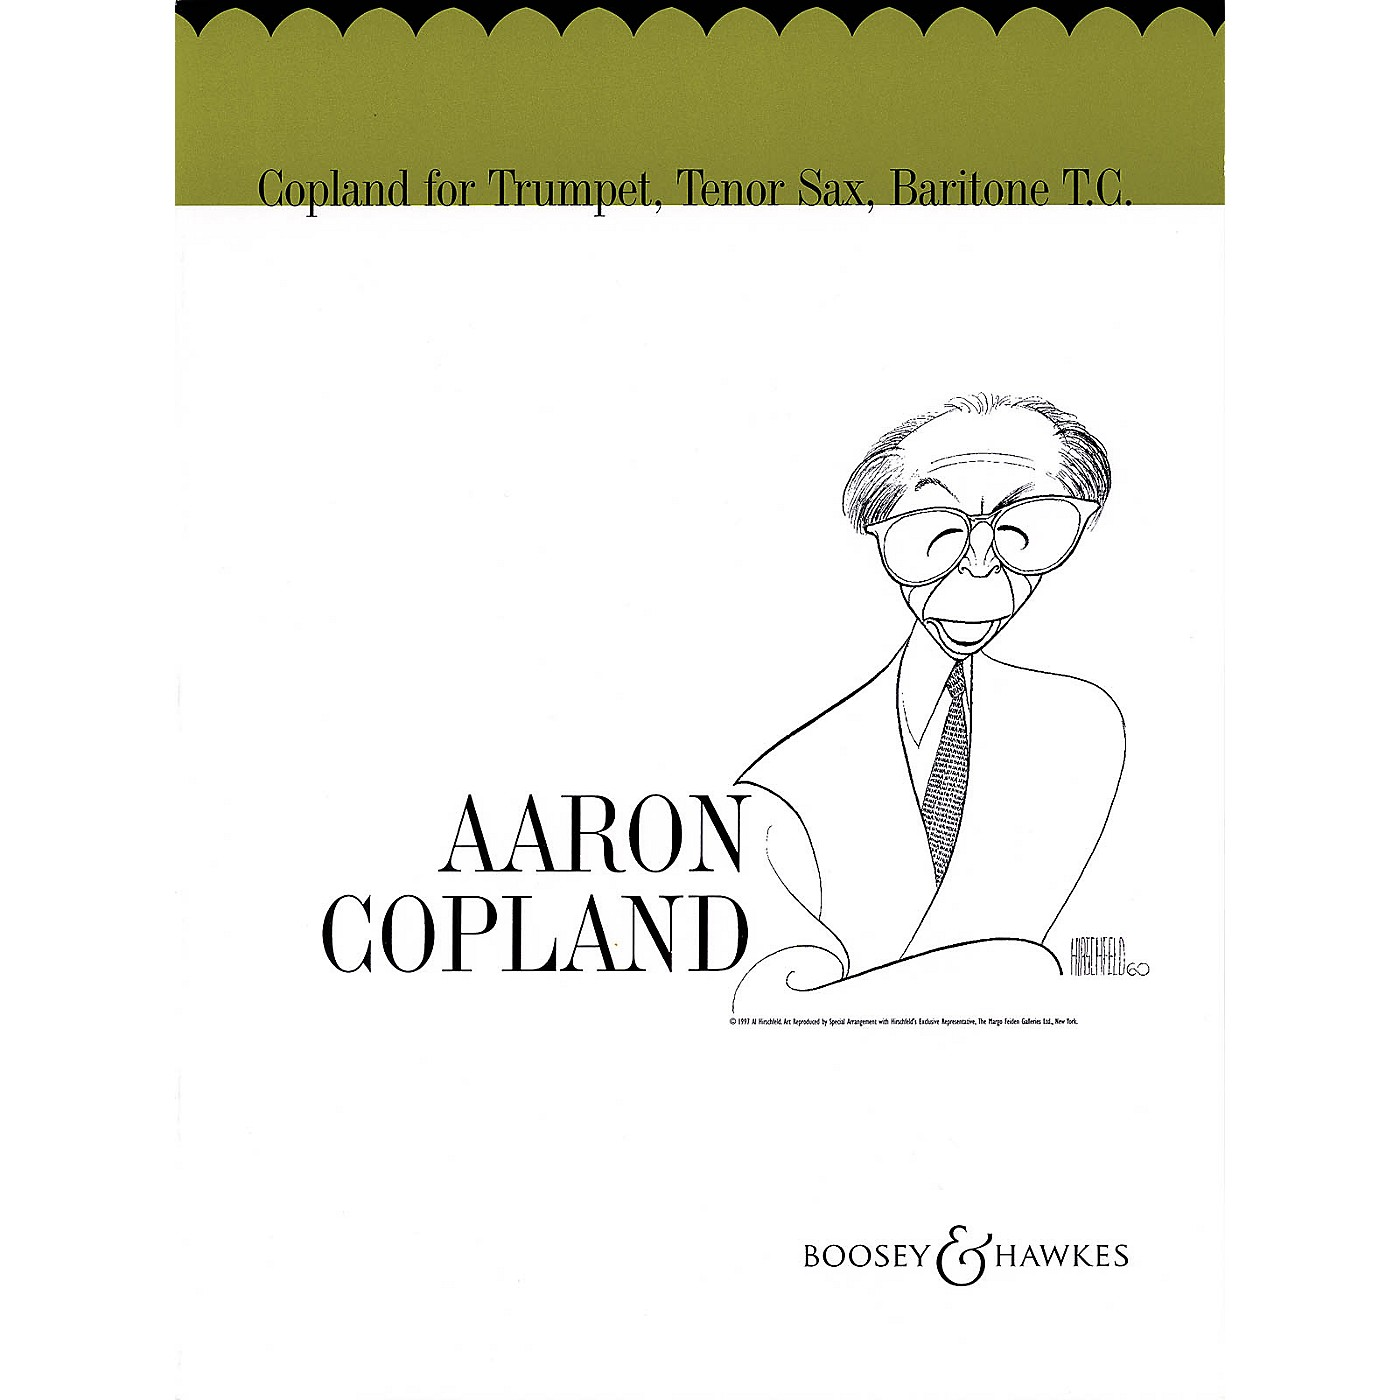 Boosey and Hawkes Copland for Trumpet, Tenor Sax, Baritone T.C. Boosey & Hawkes Chamber Music Book by Aaron Copland thumbnail